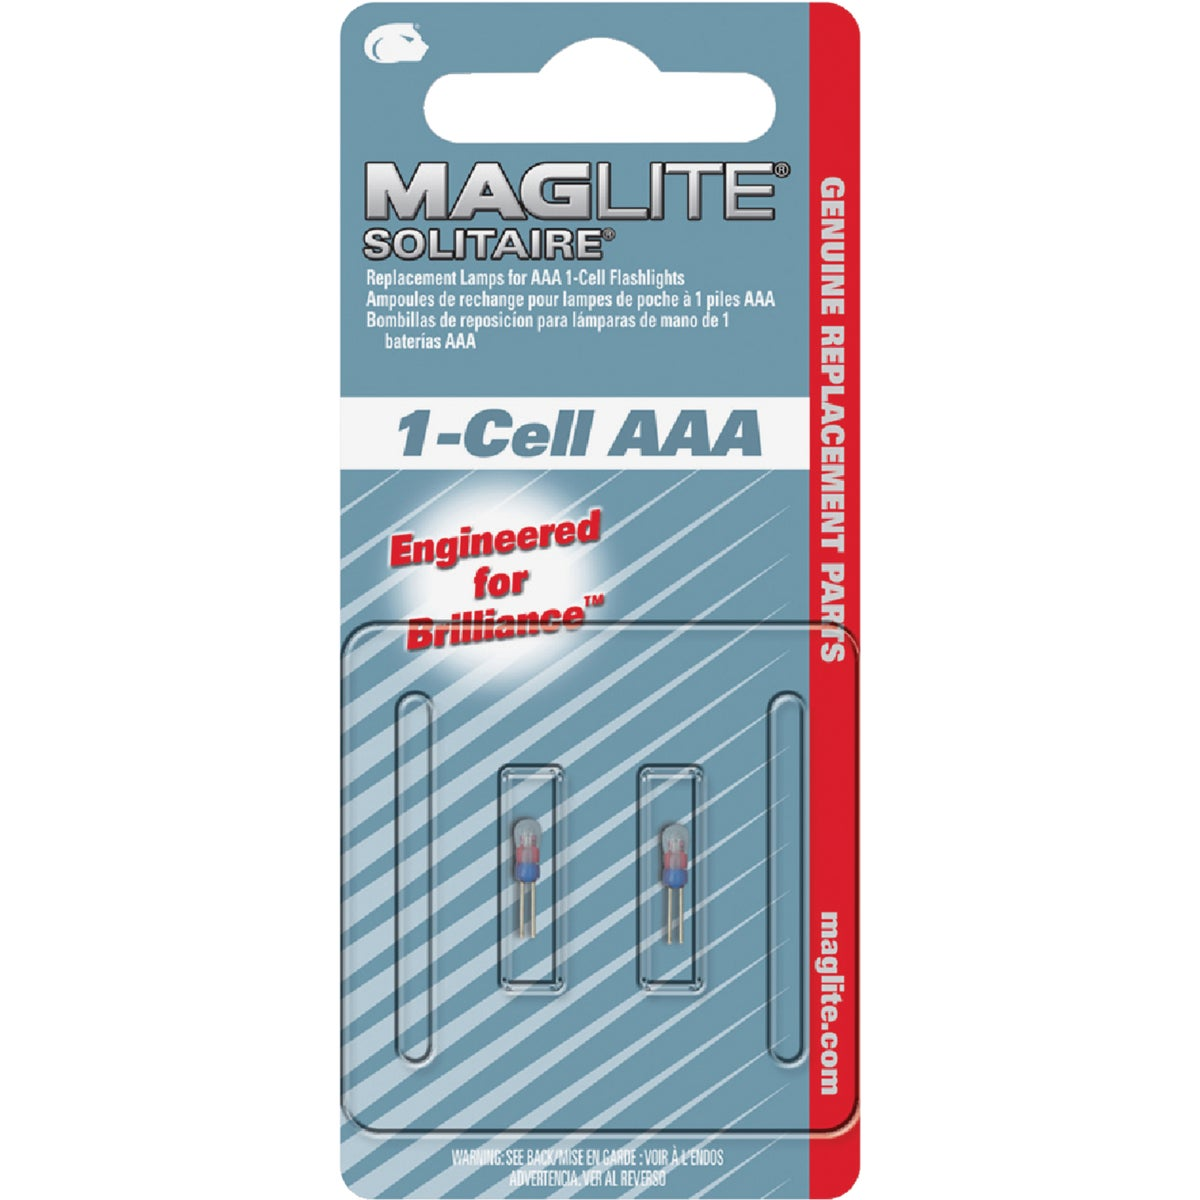 SOLITAIRE REPLACEMT BULB - LK3A001 by Mag Instrmnt